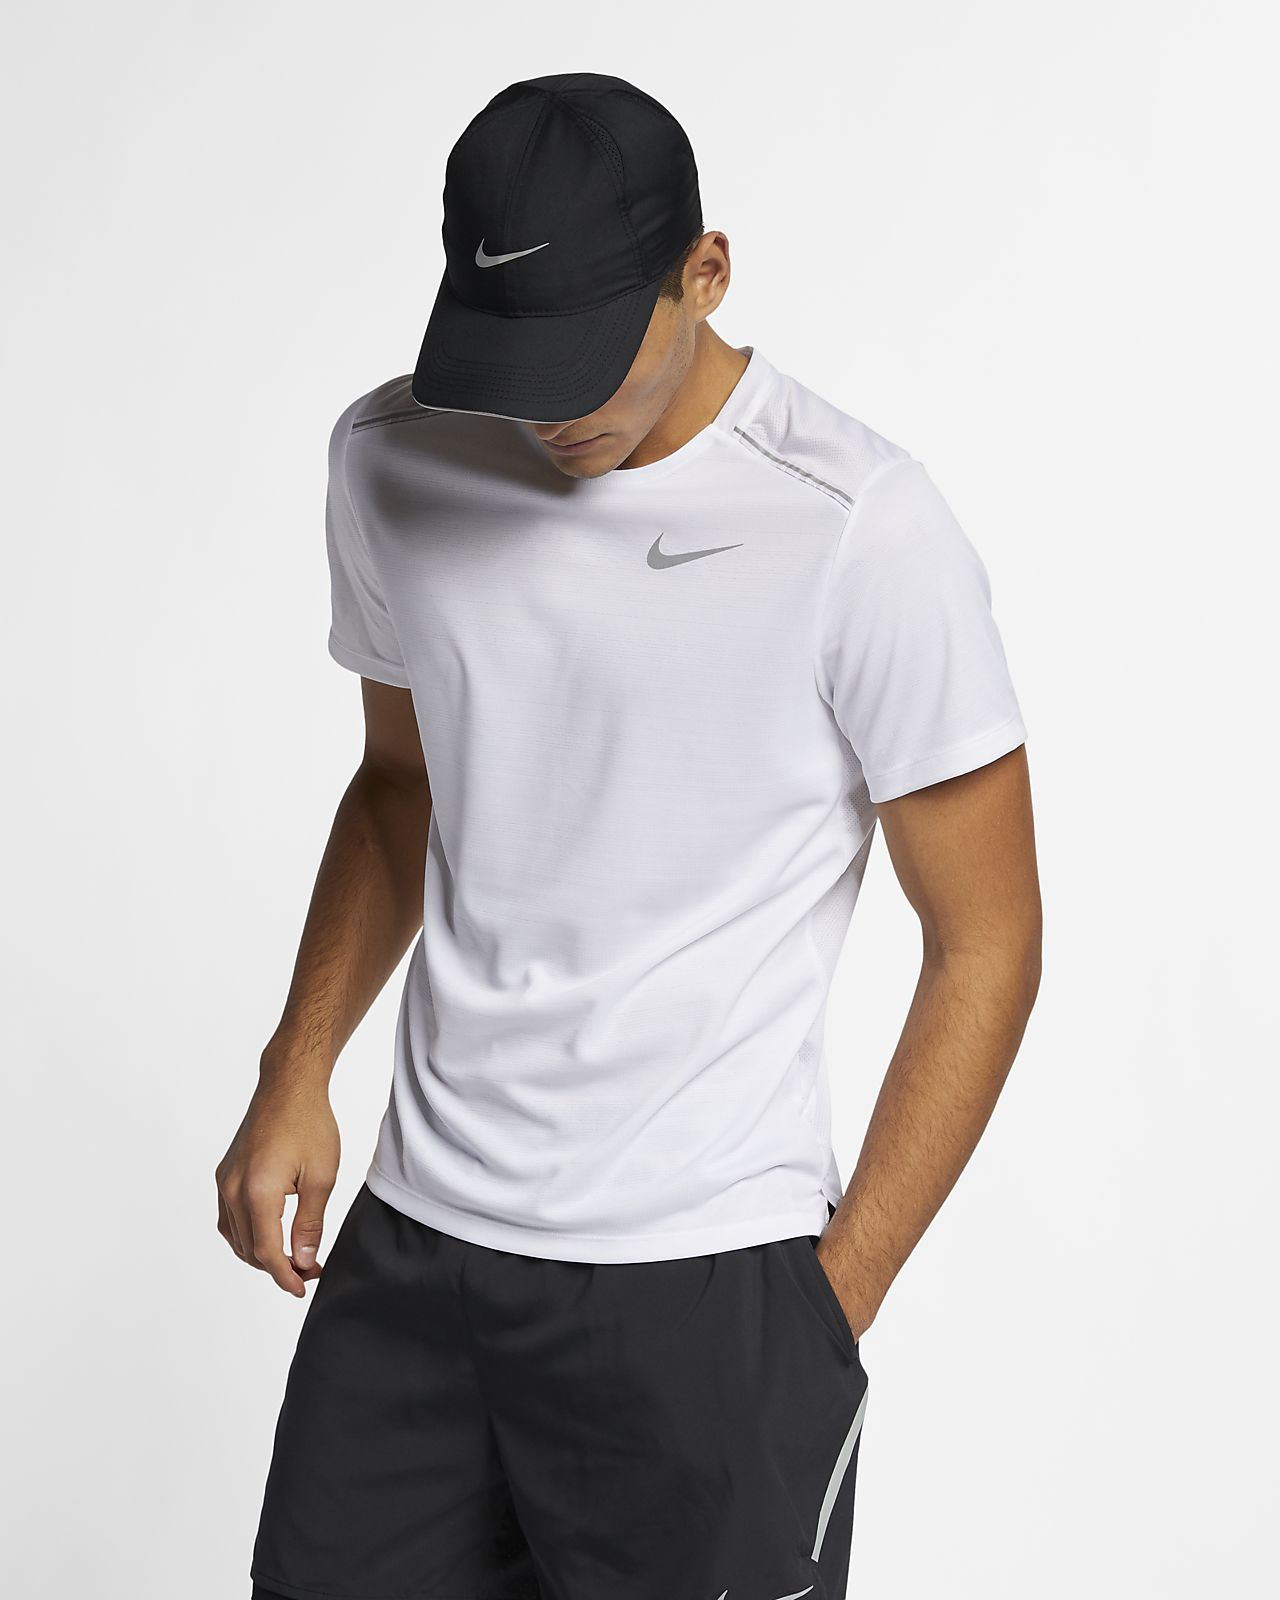 8a6d77bb Nike Dri-FIT Miler Men's Short-Sleeve Running Top. Nike.com